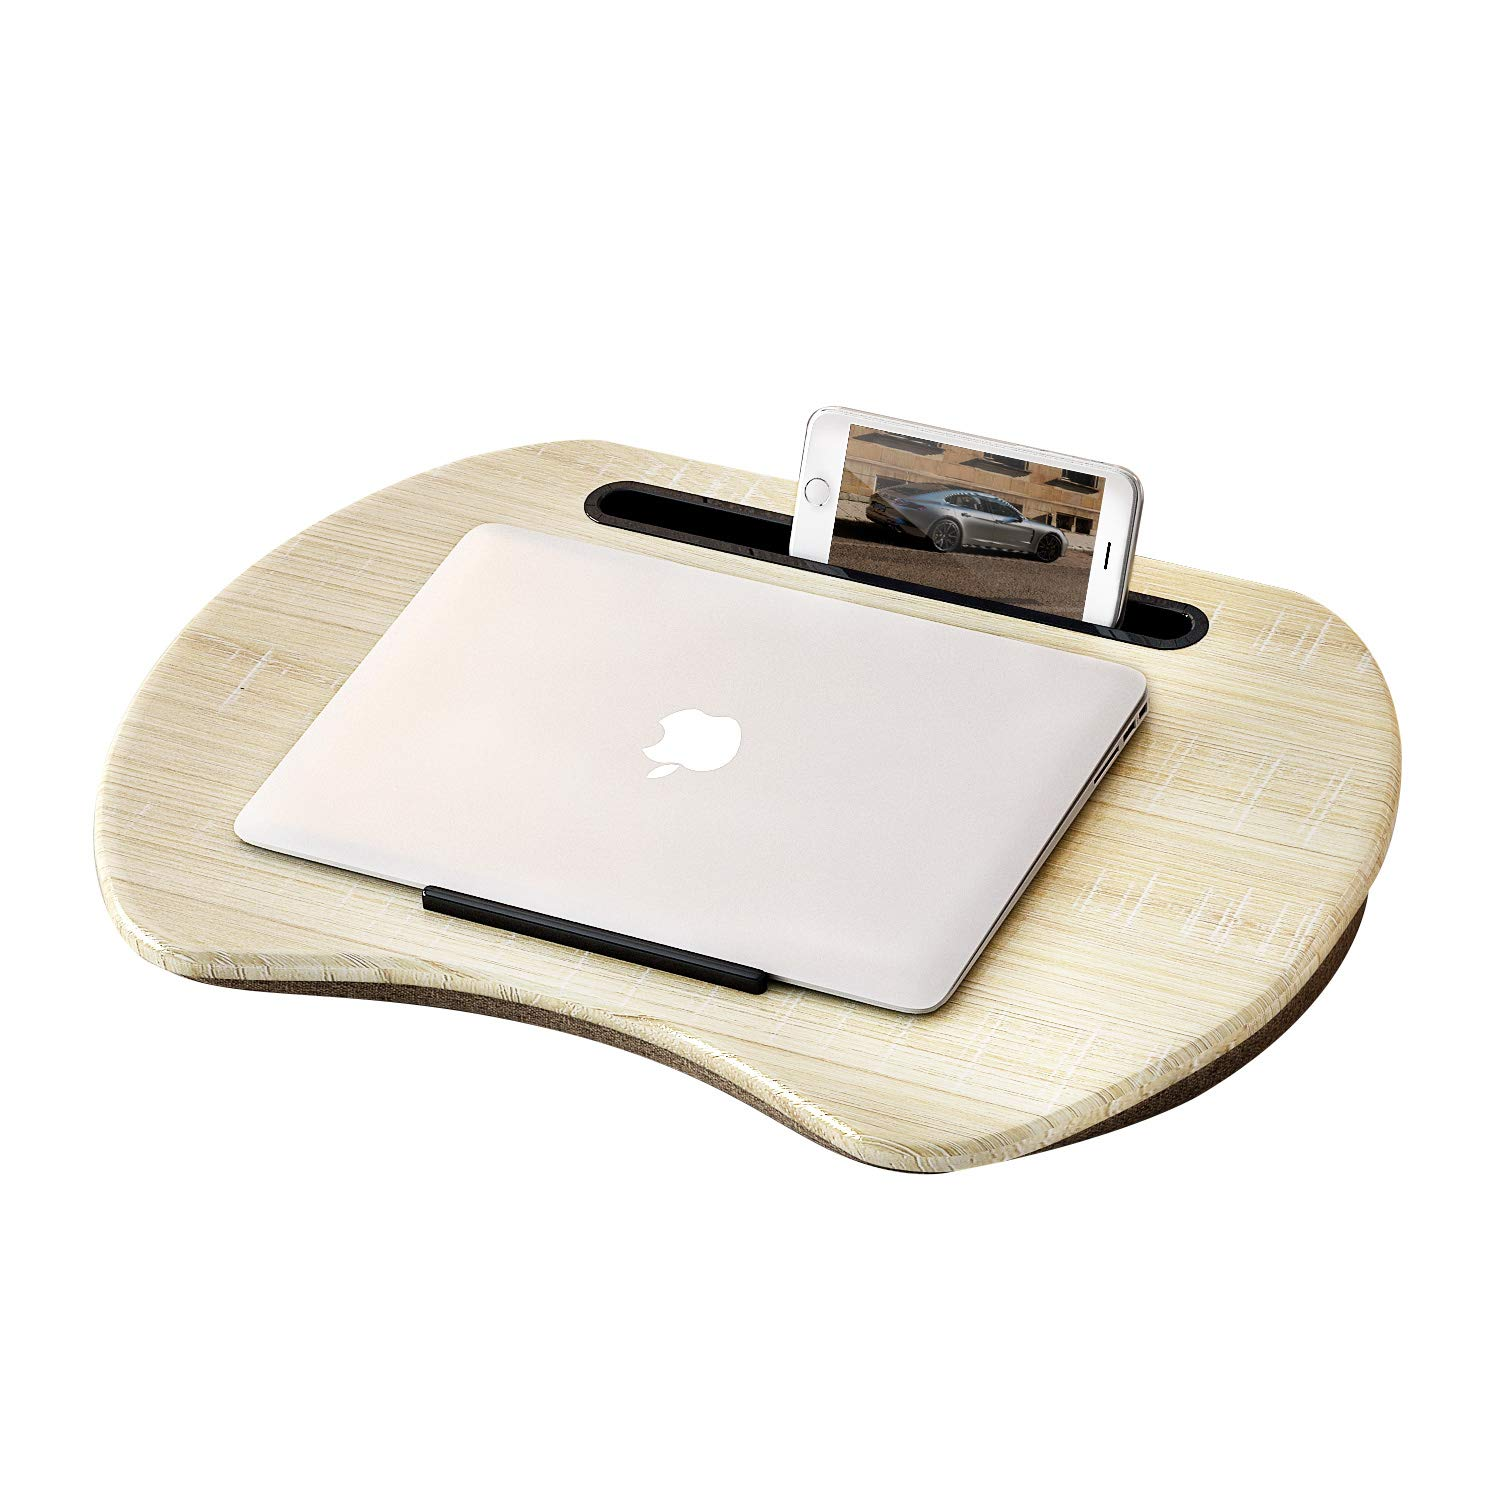 """HOME BI Lap Desk, Portable Laptop Table with Phone Tablet Holder, Fits up to 15"""" Laptop and 9.7'' Tablet (Grey)"""